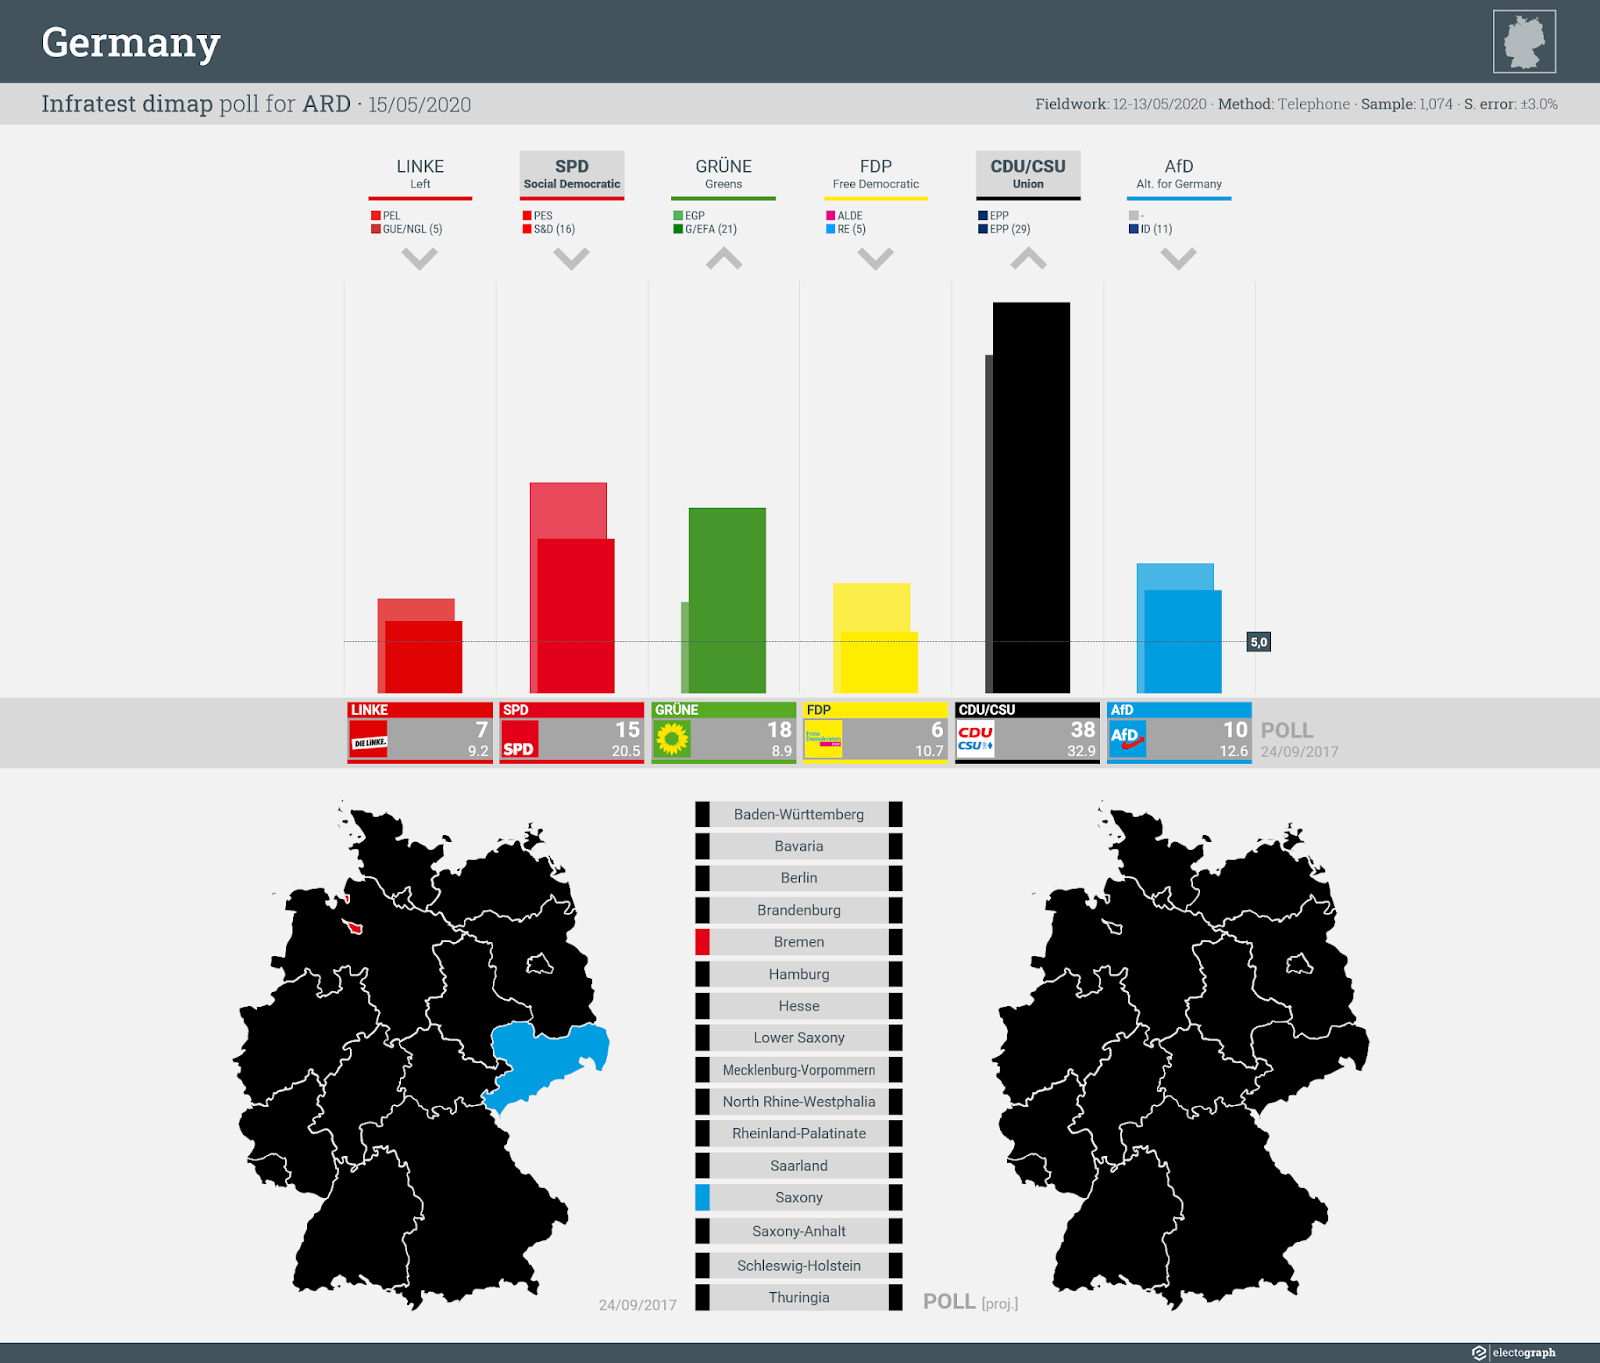 GERMANY: Infratest dimap poll chart for ARD, 15 May 2020